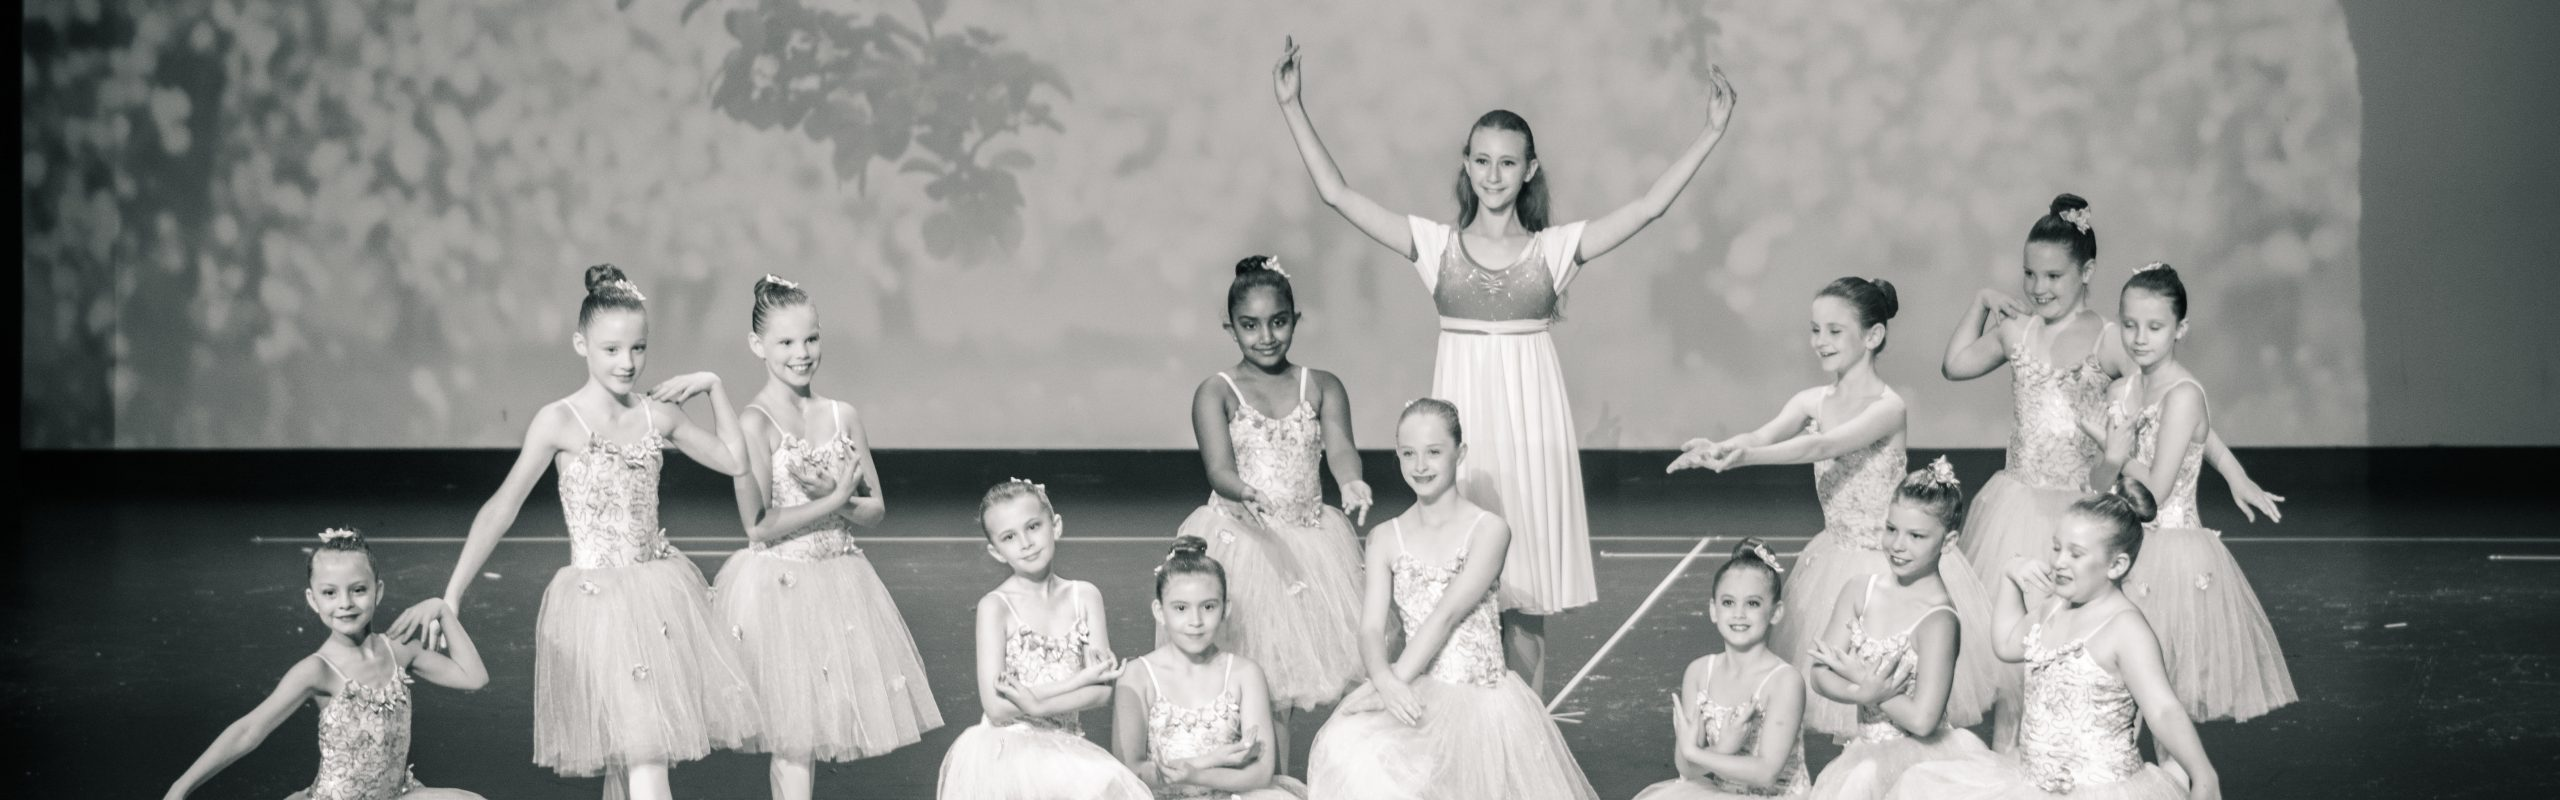 Joy Jeanes School of Dance